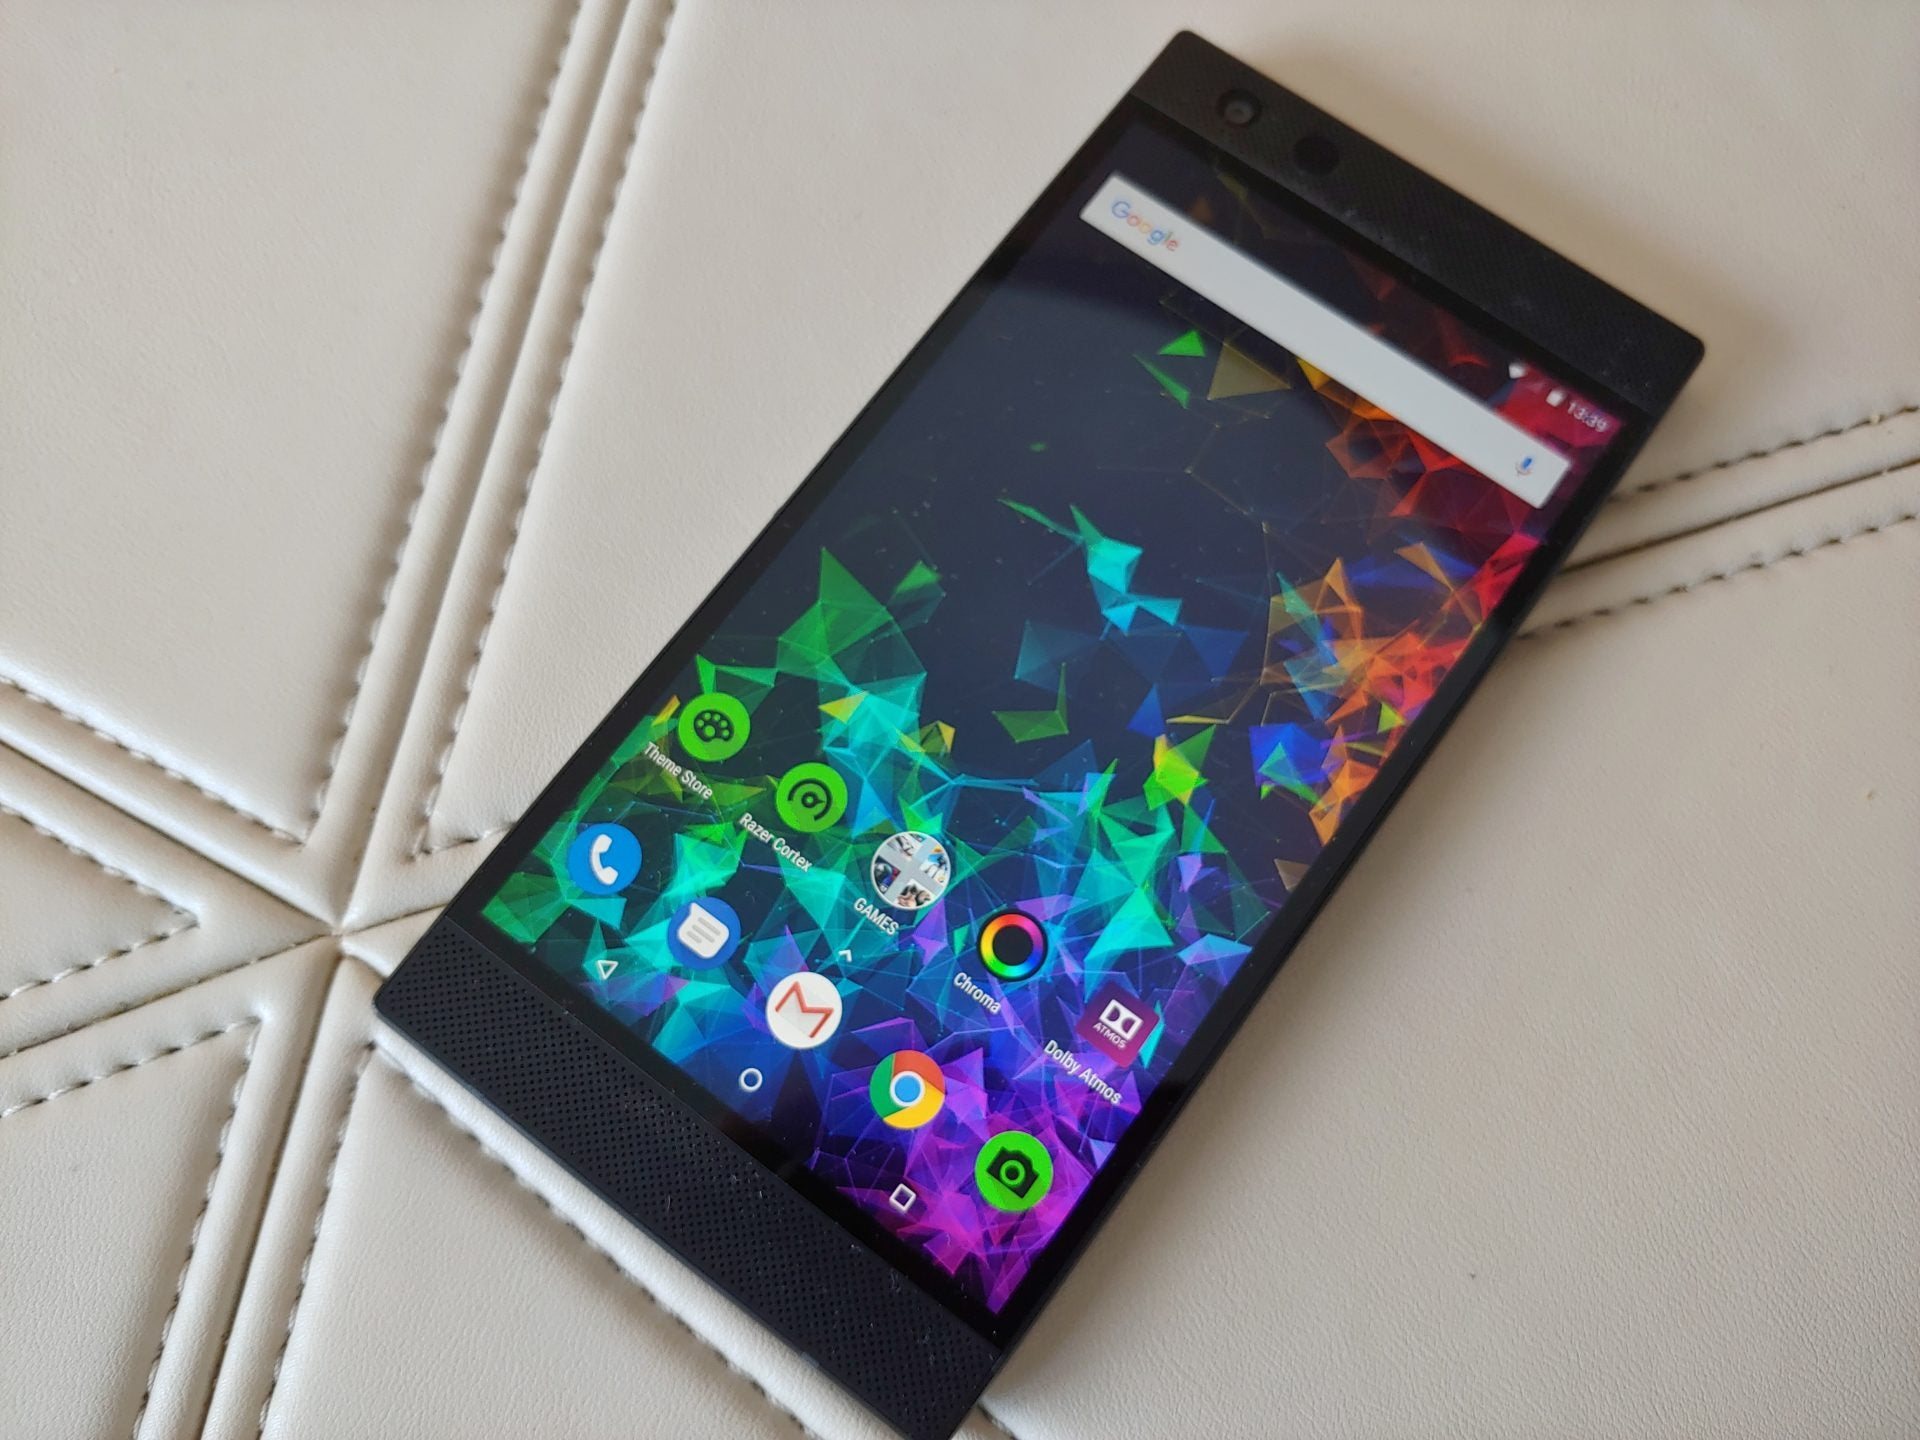 Razer Phone 2 and its amazing screen half price for Prime Day